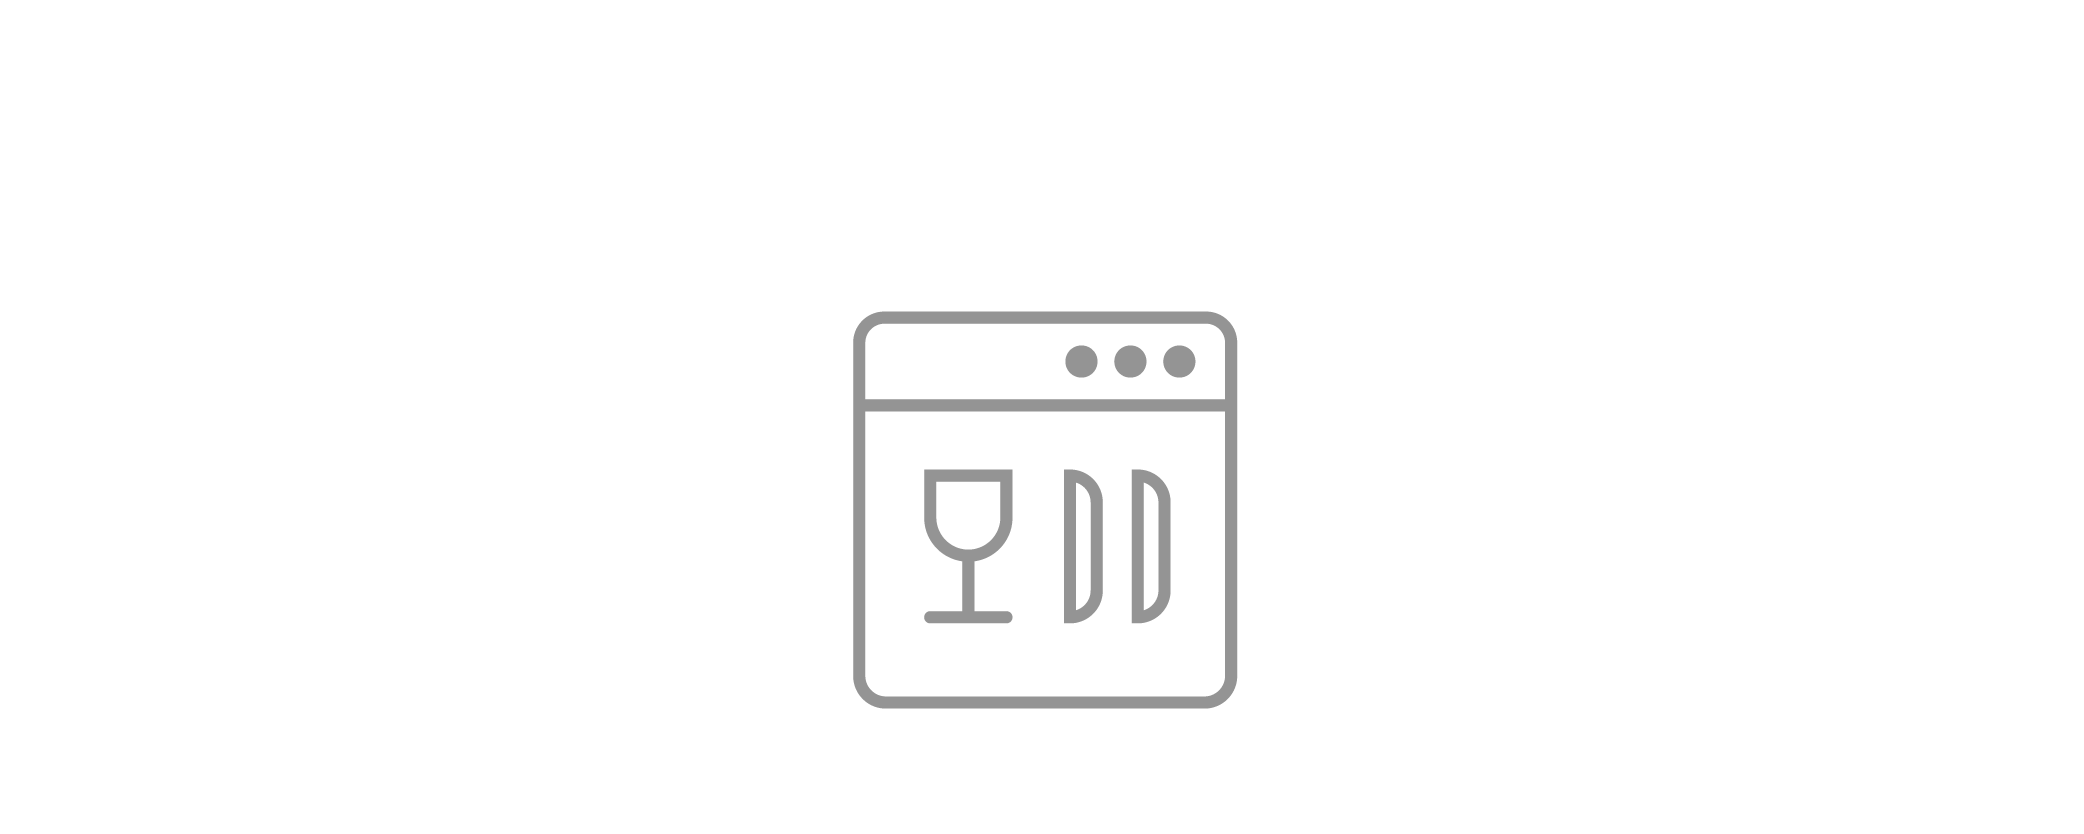 Website_Icons-35.png